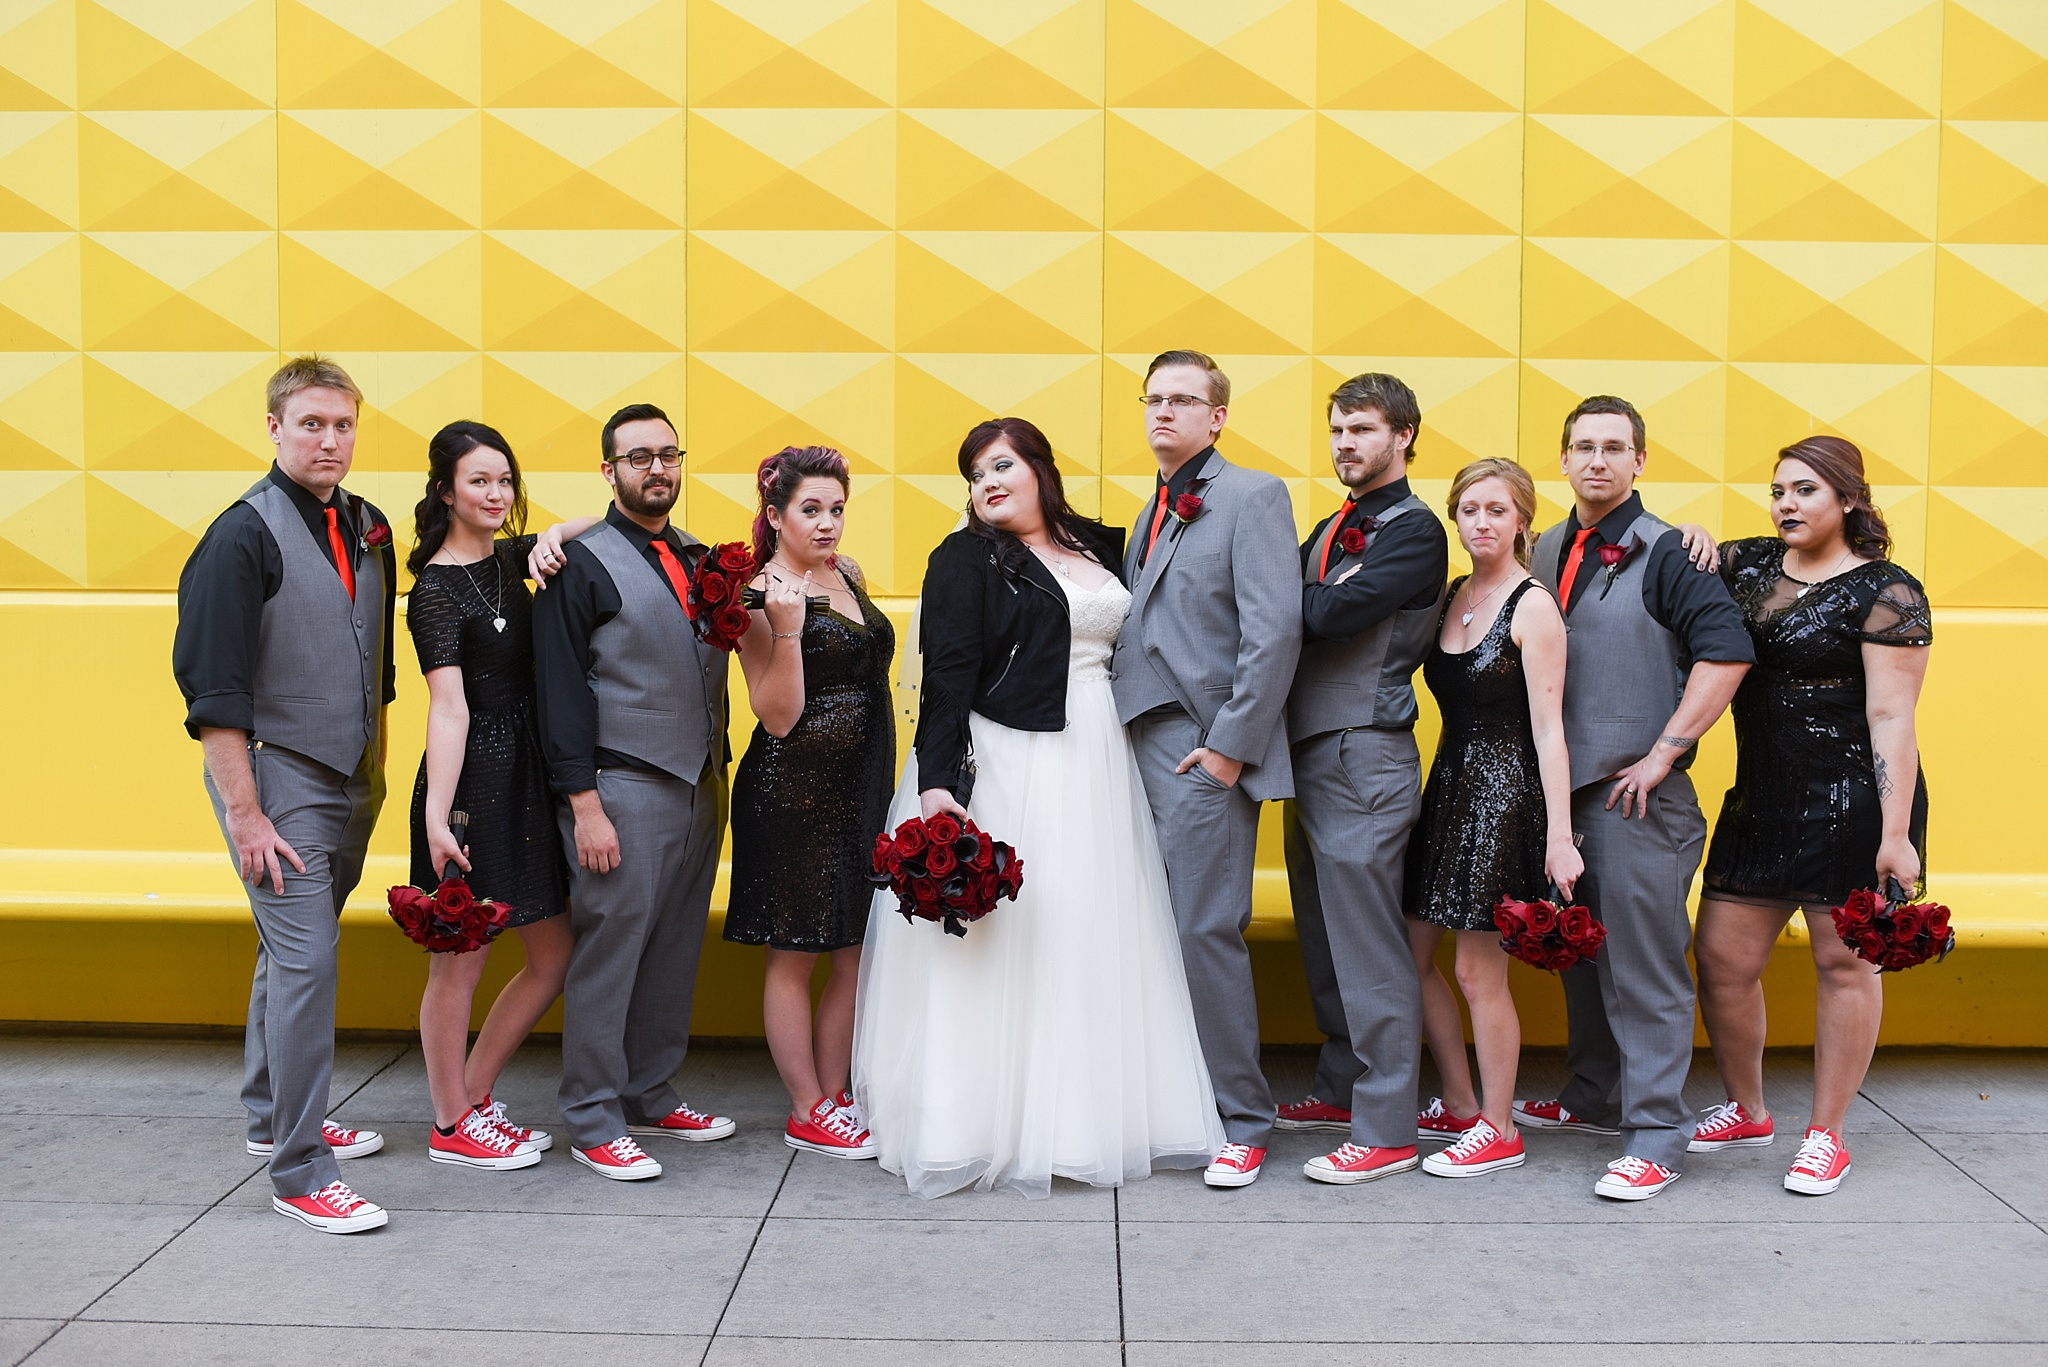 Alecia & Nick's Rock 'N Roll Themed Wedding at The Studios at Overland Crossing, The Studios at Overland Crossing, The Studios, Overland Crossing, Denver Wedding Photographer, Denver Wedding, Downtown Denver Wedding, Yellow Wall, Rock N Roll Wedding, Rock Wedding, Bridal Party Portraits, Bridal Party Photos, Bridal Party, Yellow Wall Downtown Denver, Curtis Hotel Yellow Wall